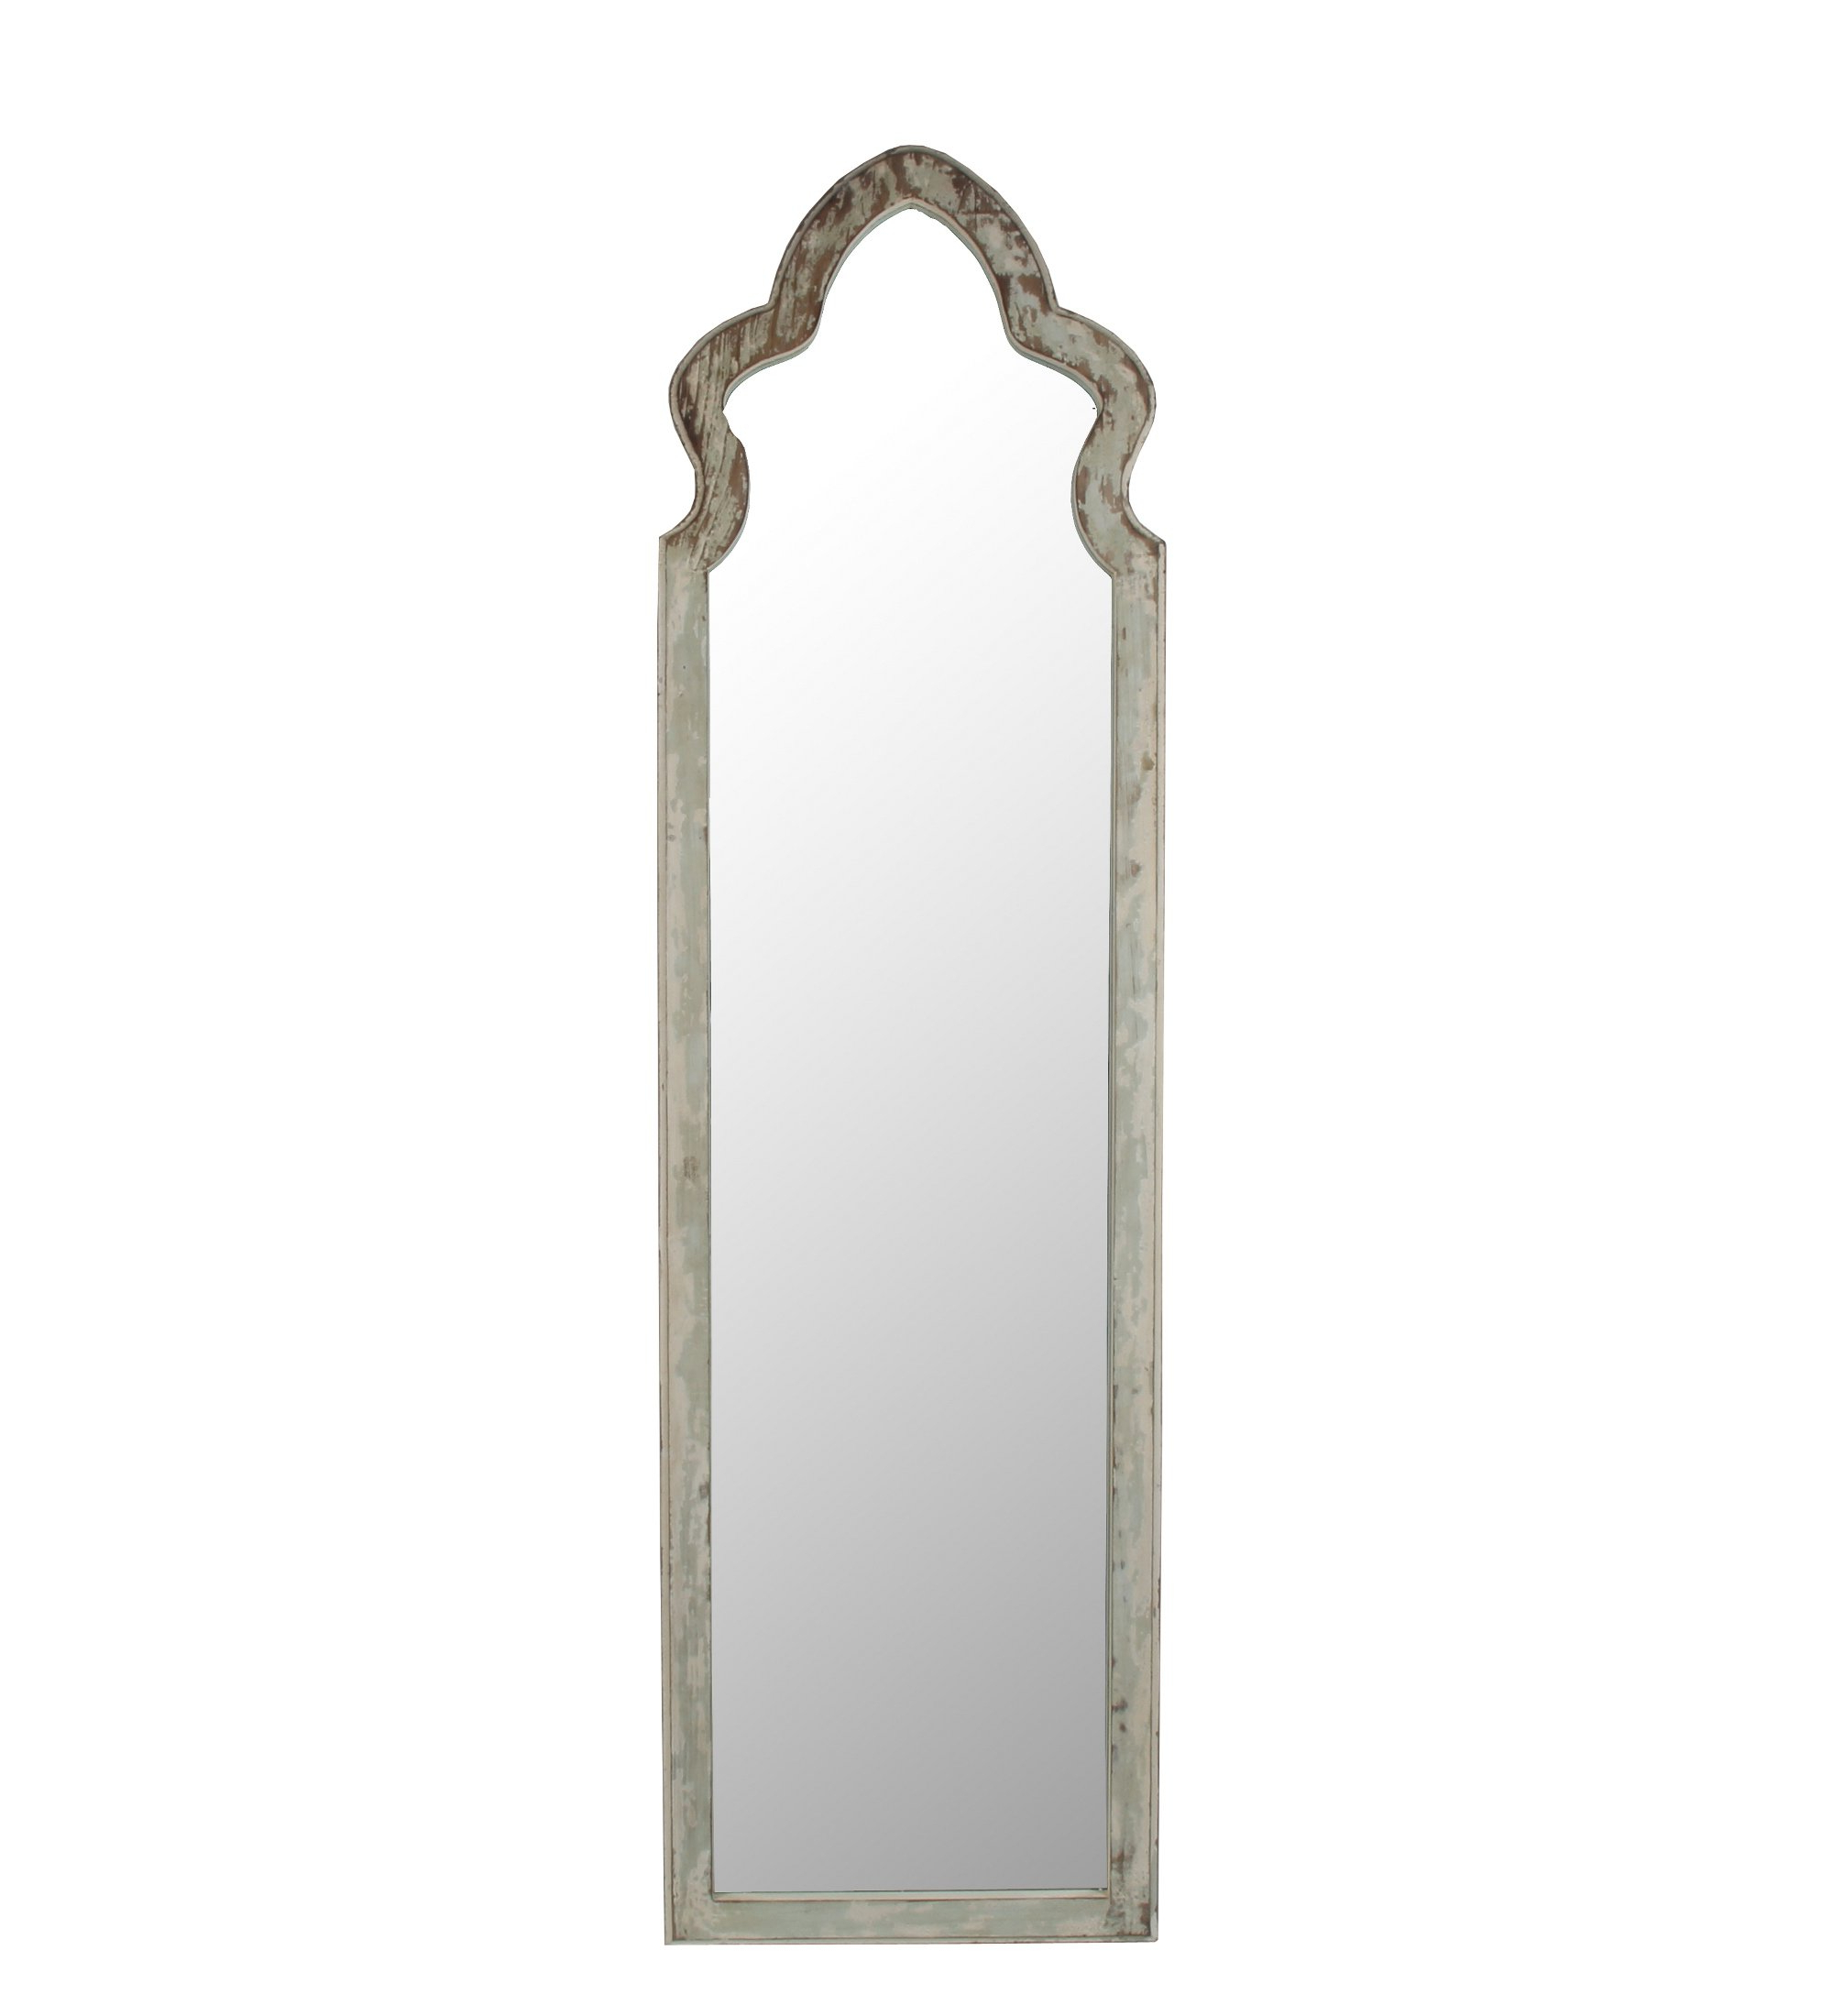 Most Popular Fifi Contemporary Arch Wall Mirrors Inside Mendez Wall Mirror (View 16 of 20)